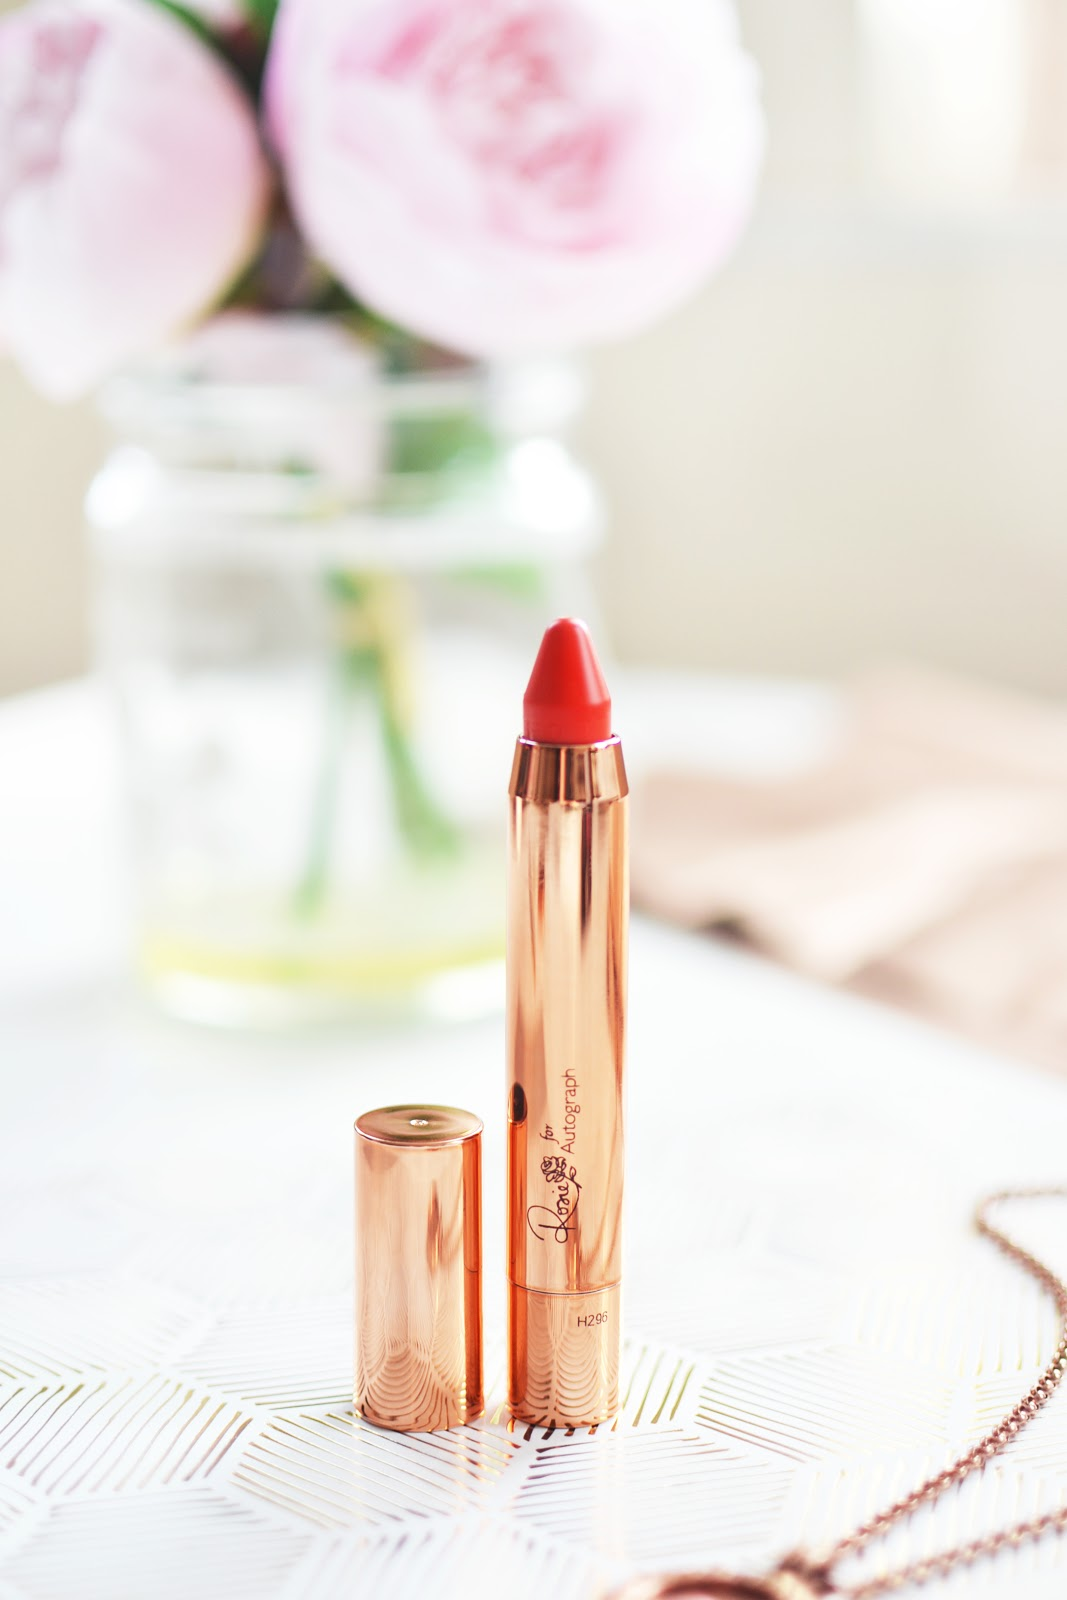 Rosie For Autograph lip glossy lipstick crayon